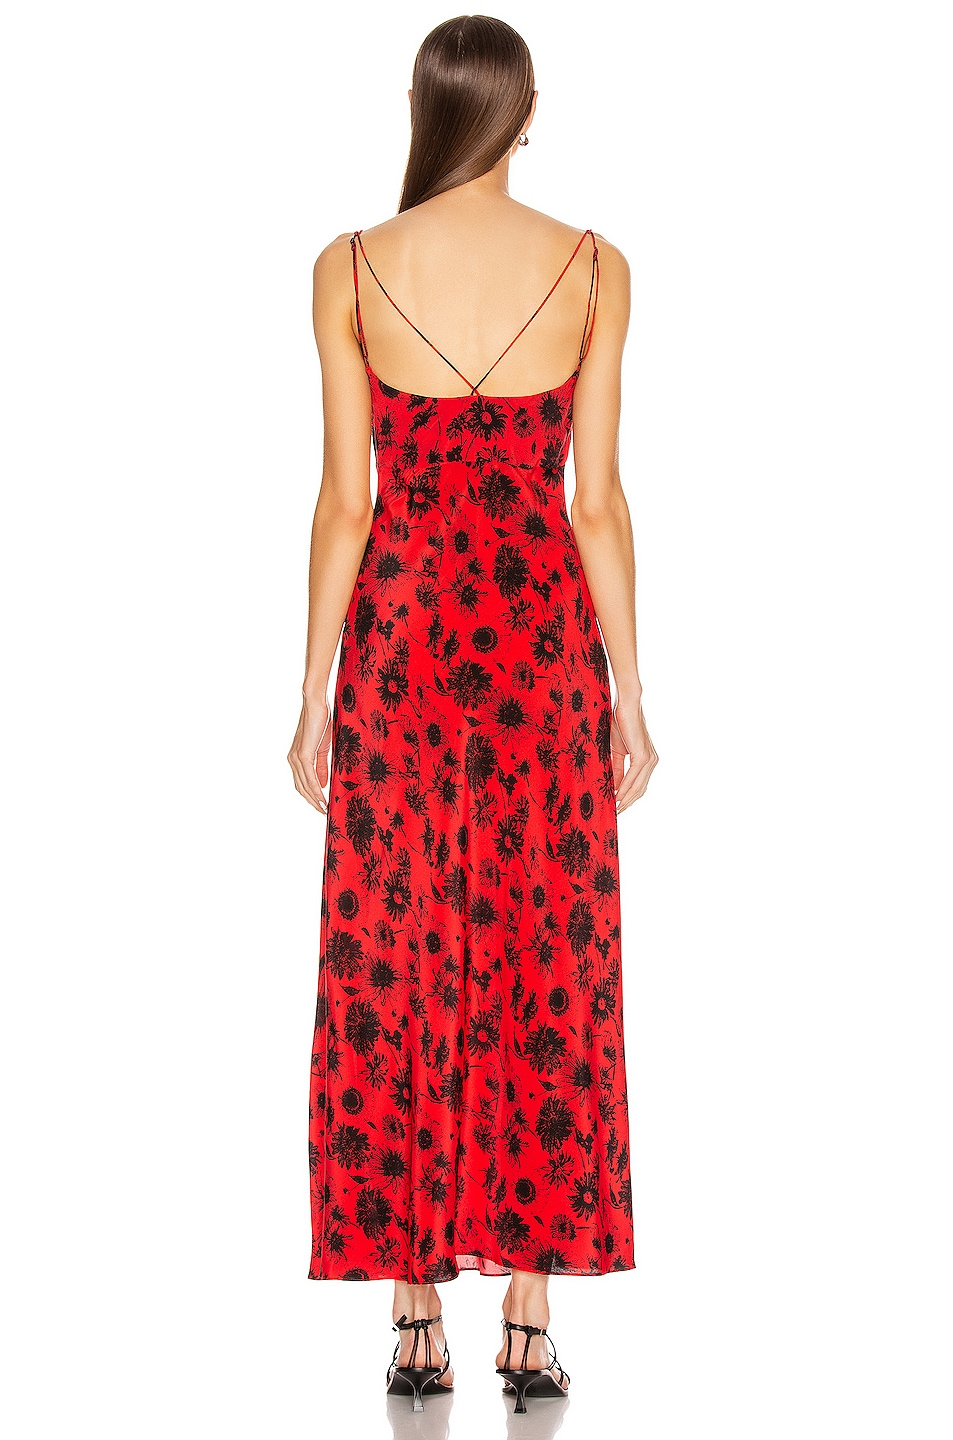 Image 3 of Les Reveries Maxi Silk Cami Dress in Wild Daisy Red